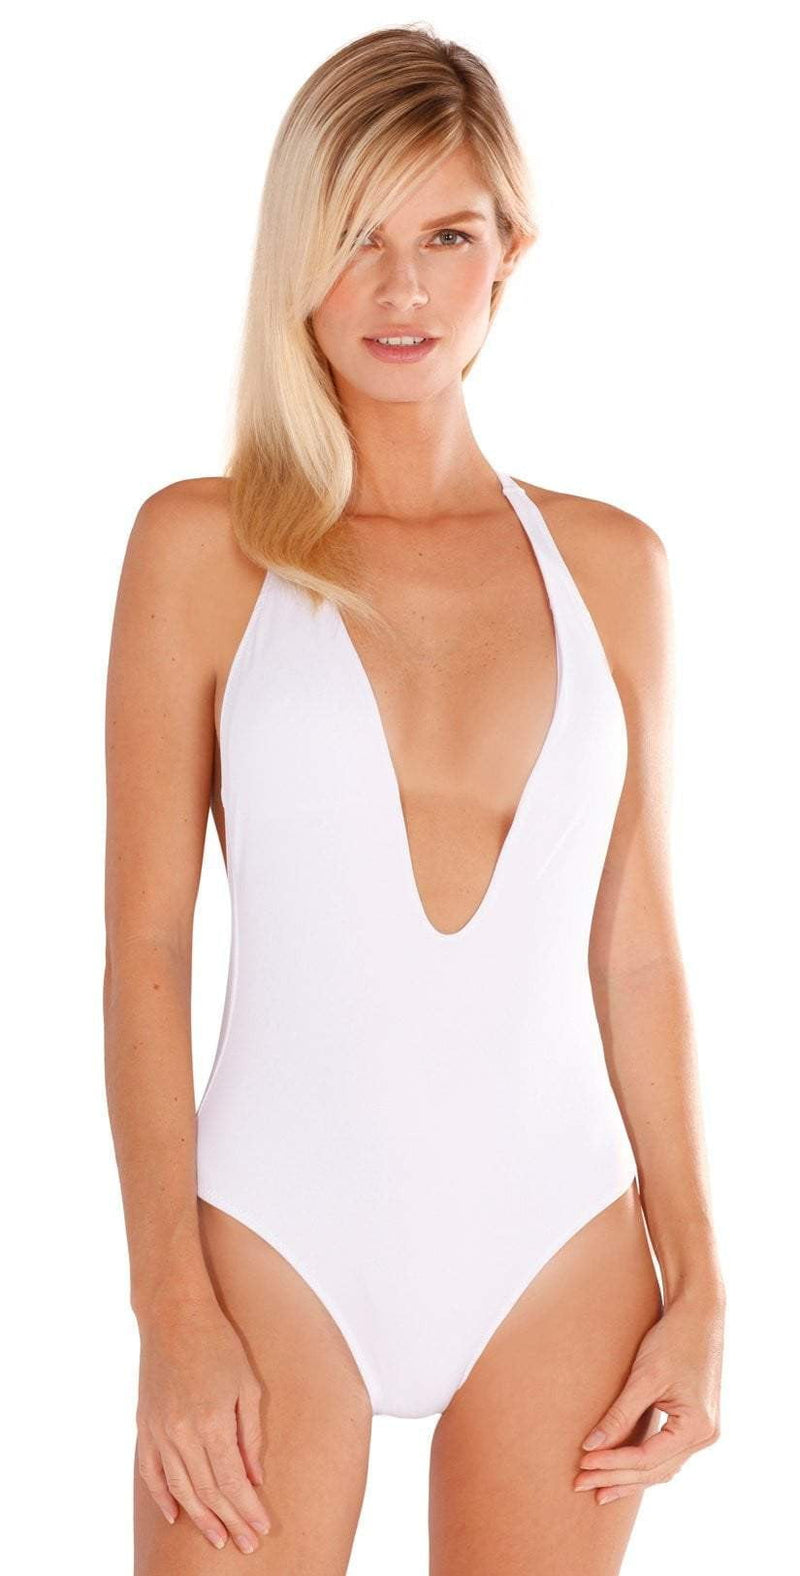 Peixoto Flamingo Latin One Piece In White 1302L-S18-WHT: